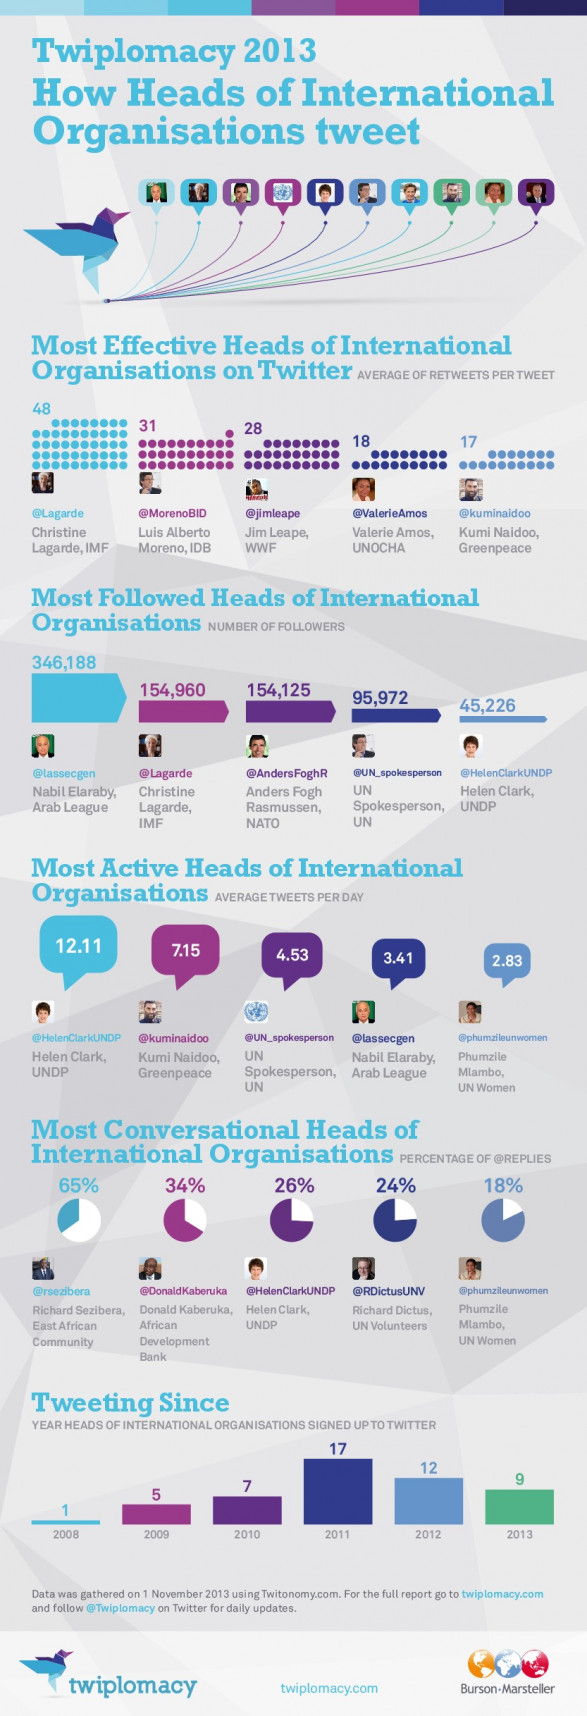 How Heads of International Organisations tweet